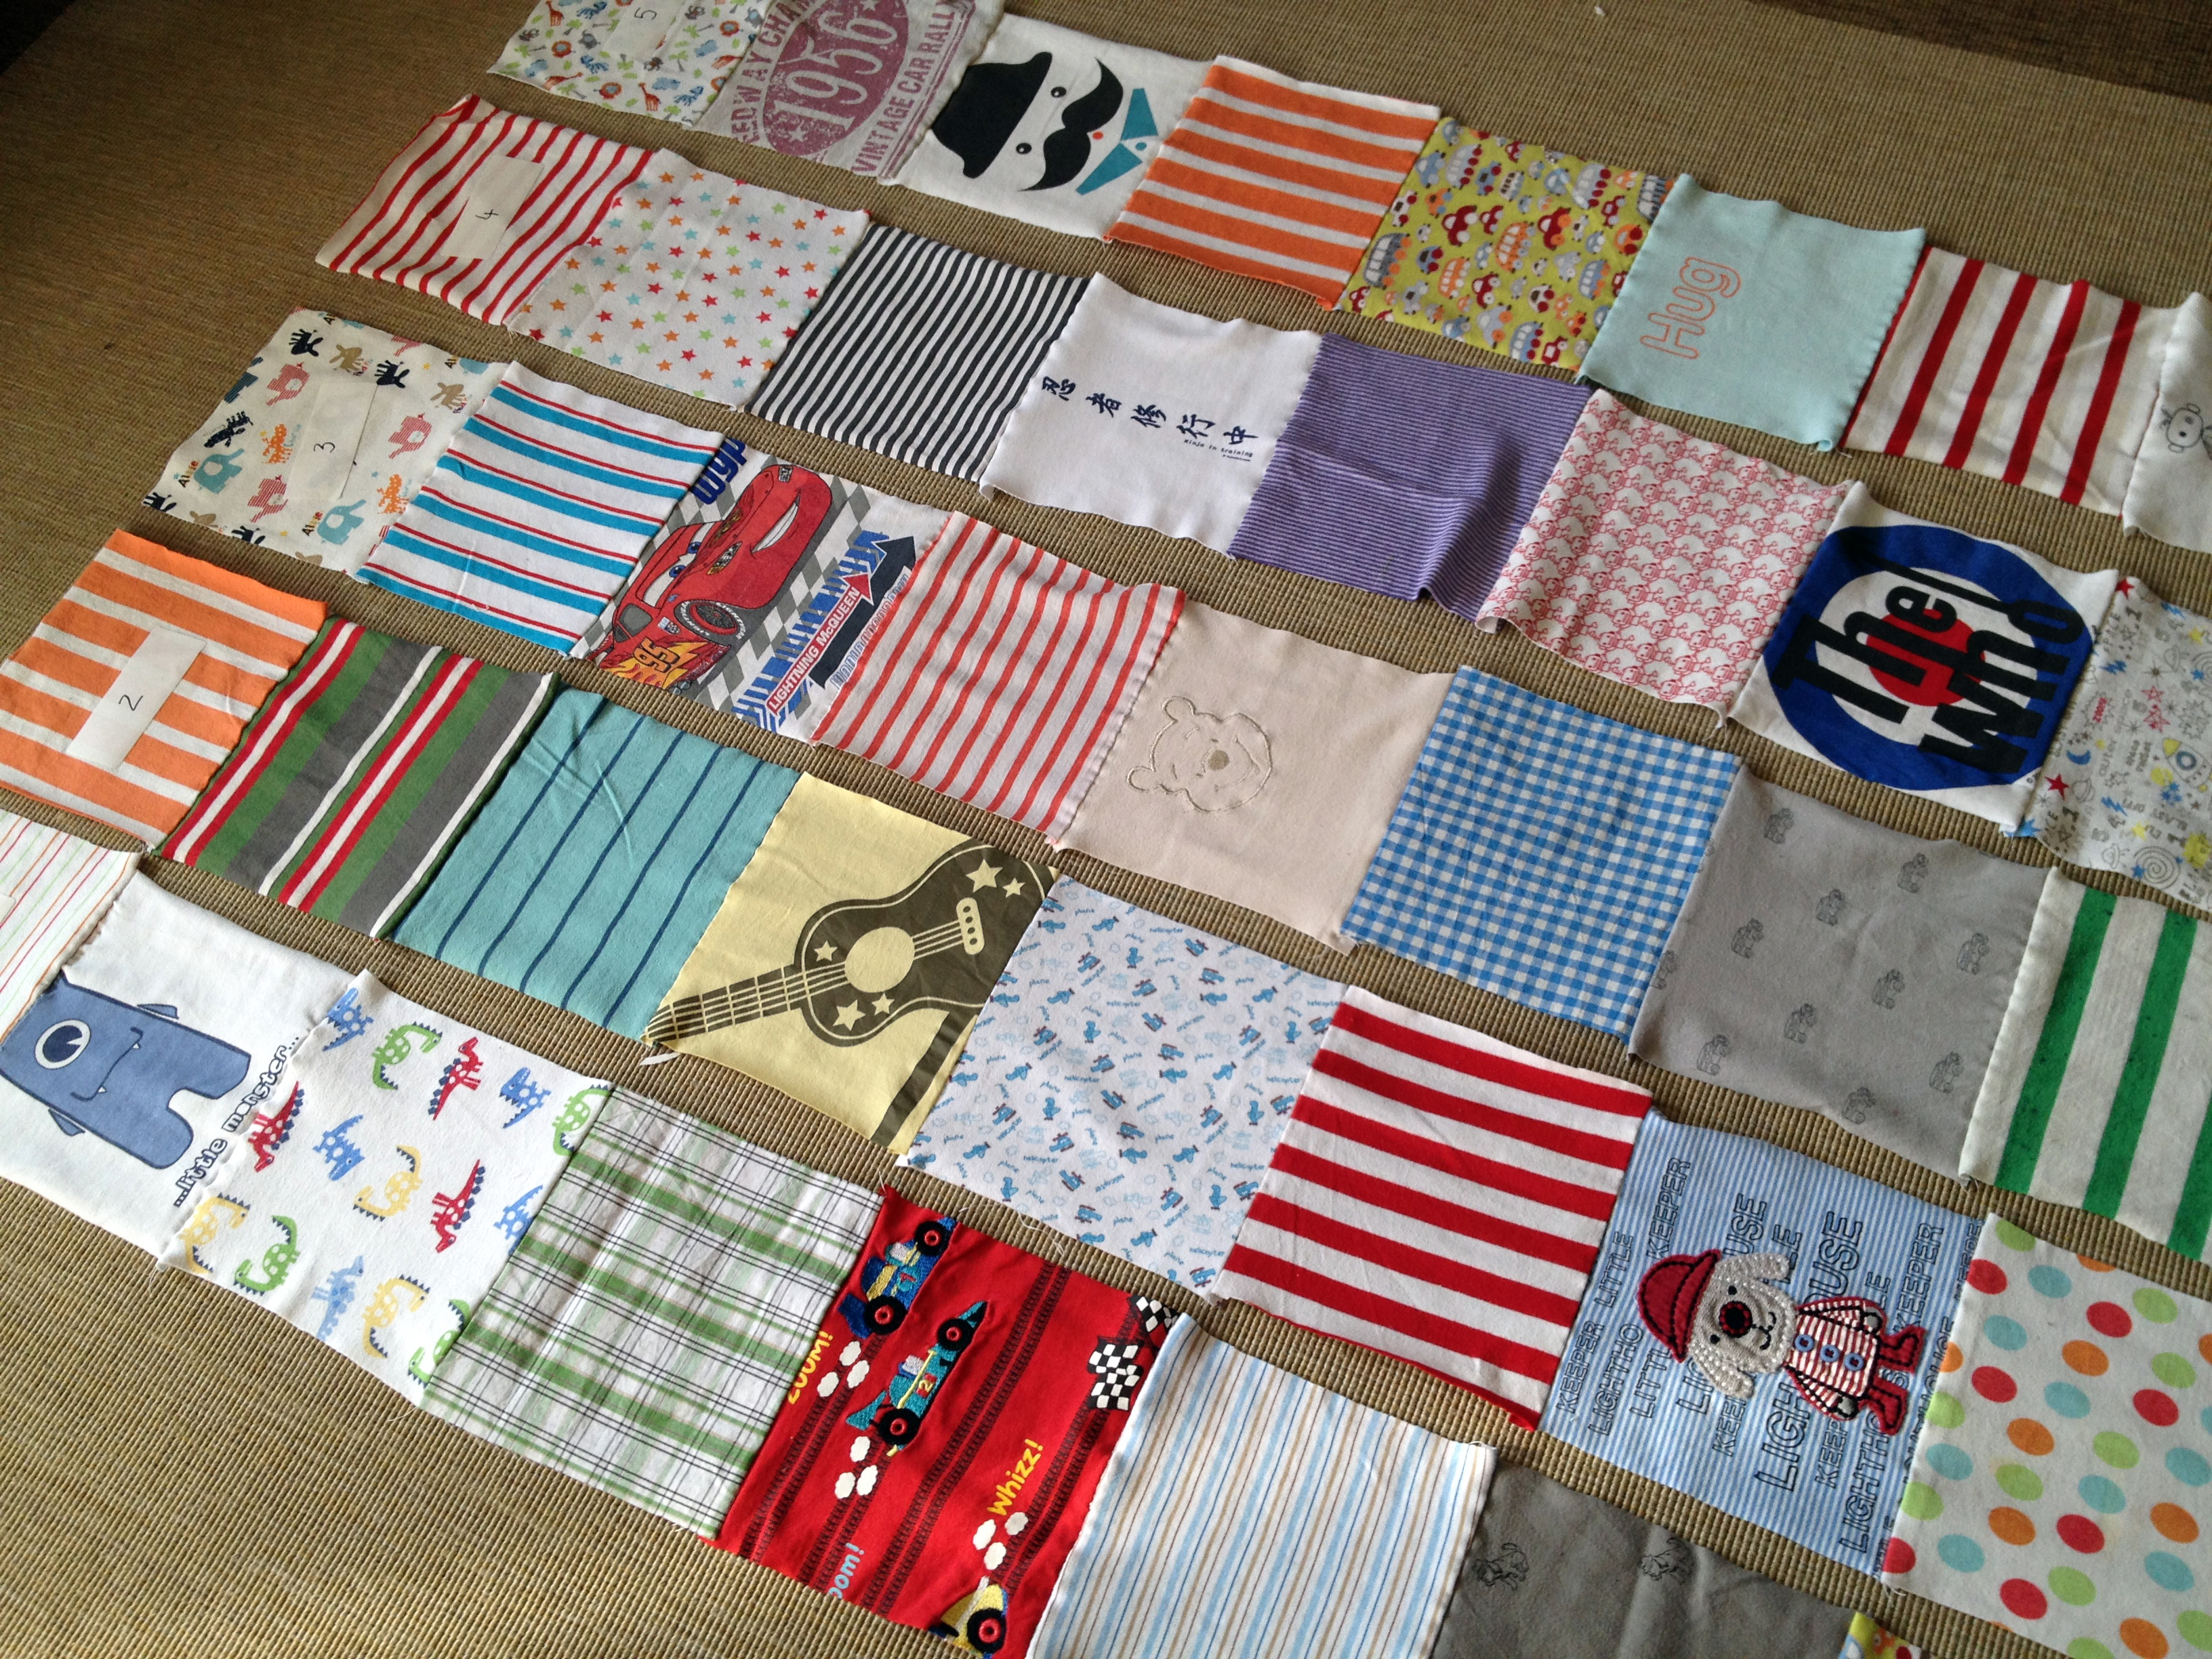 How To Make A Patchwork Quilt Hand Sewn - Best Accessories Home 2017 : patchwork quilt by hand - Adamdwight.com